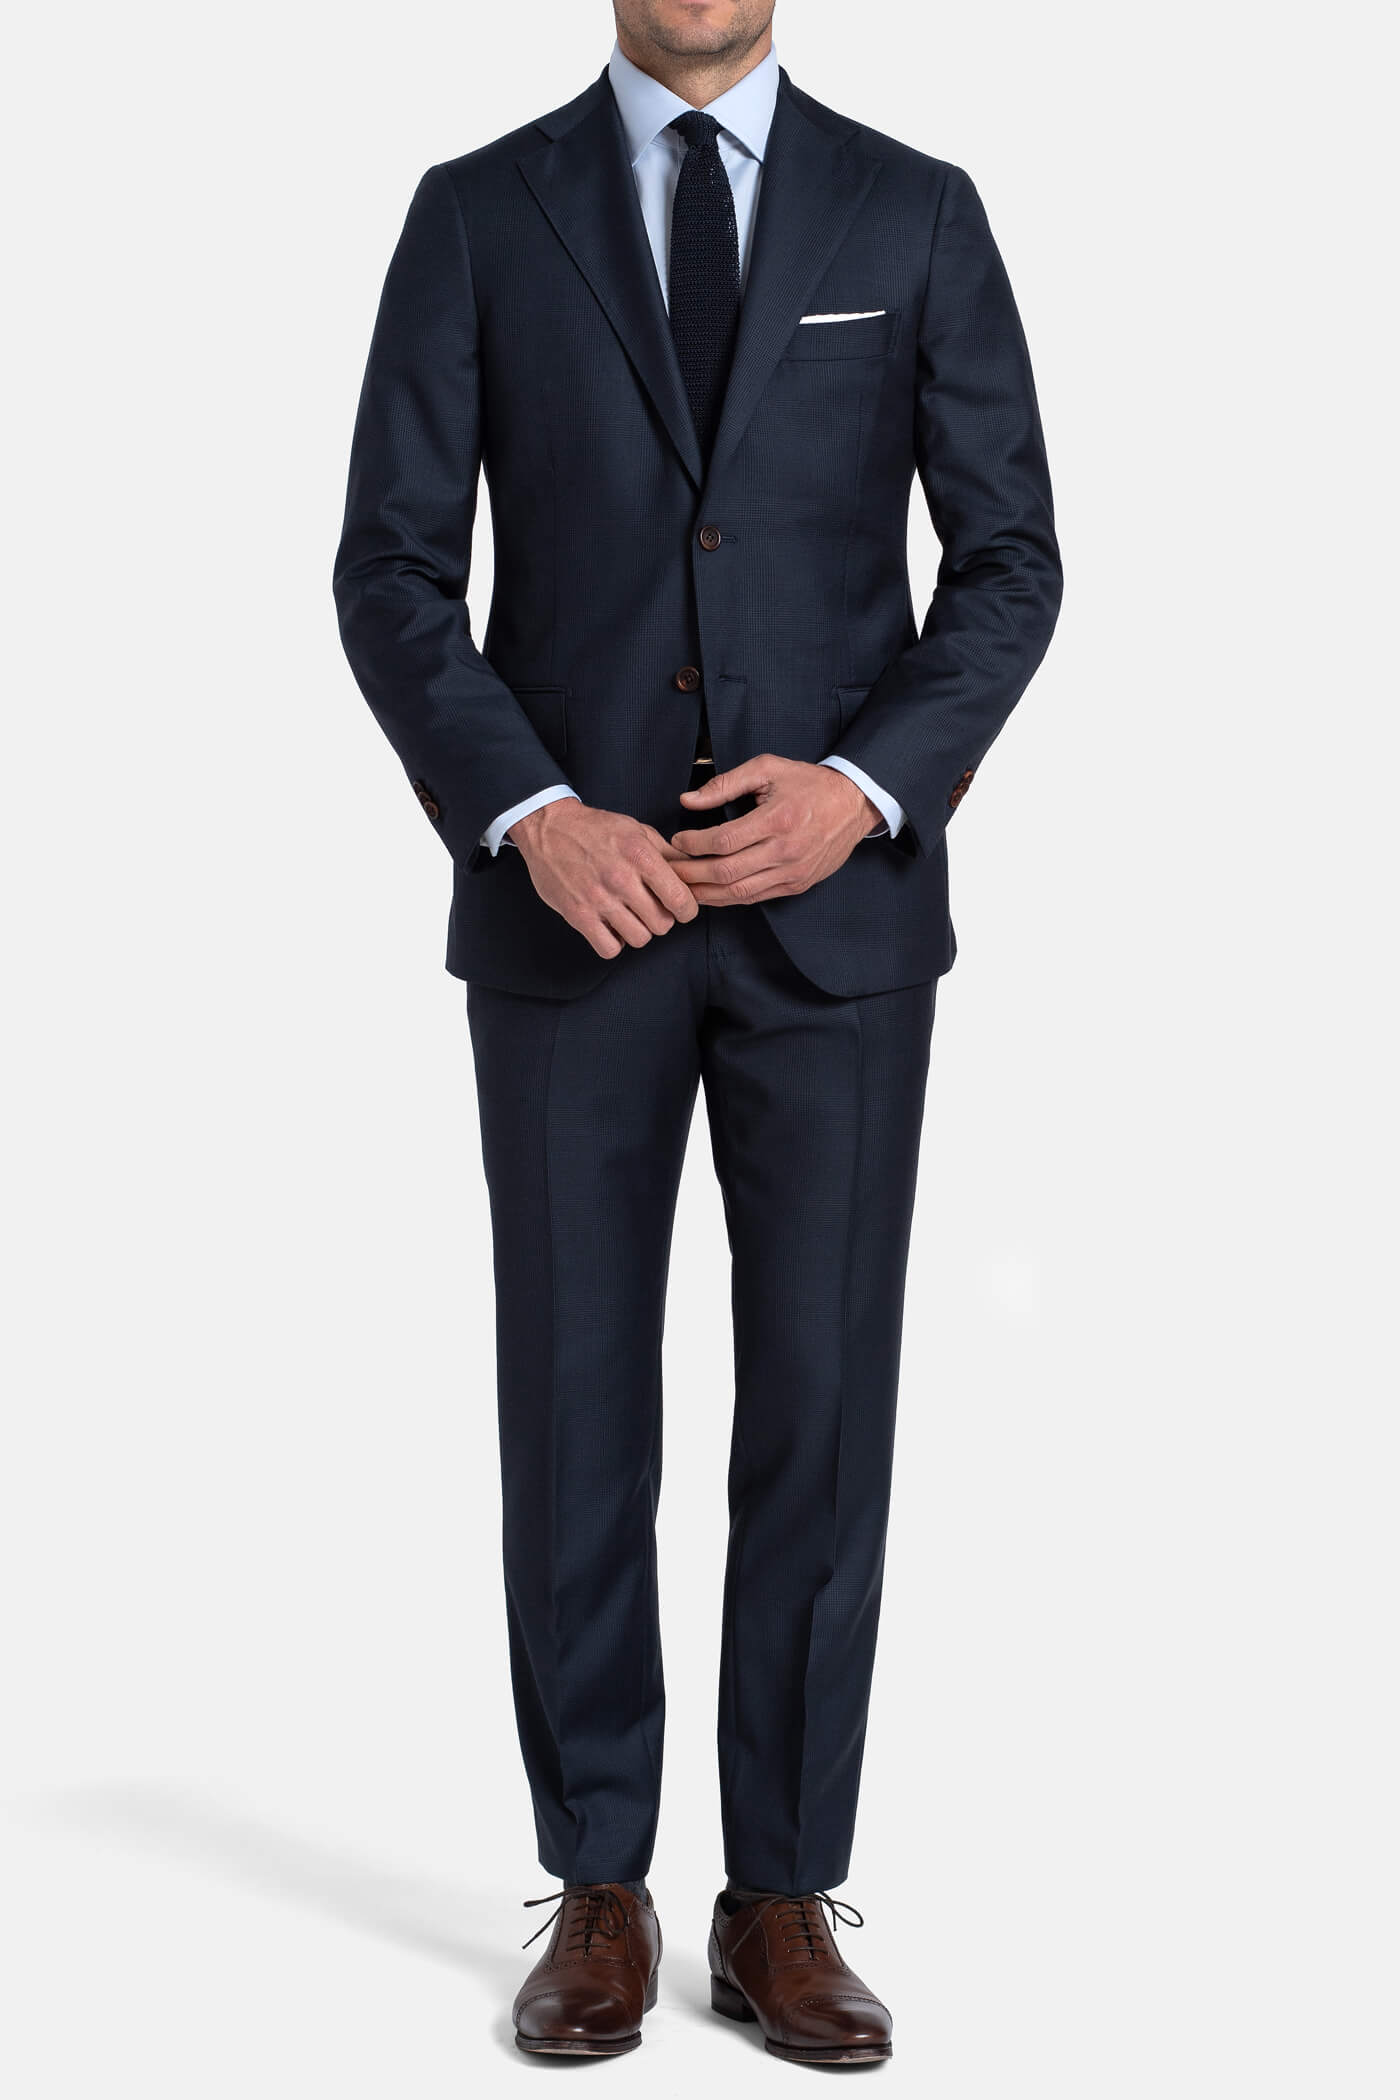 Allen Navy S110s Glen Plaid Suit